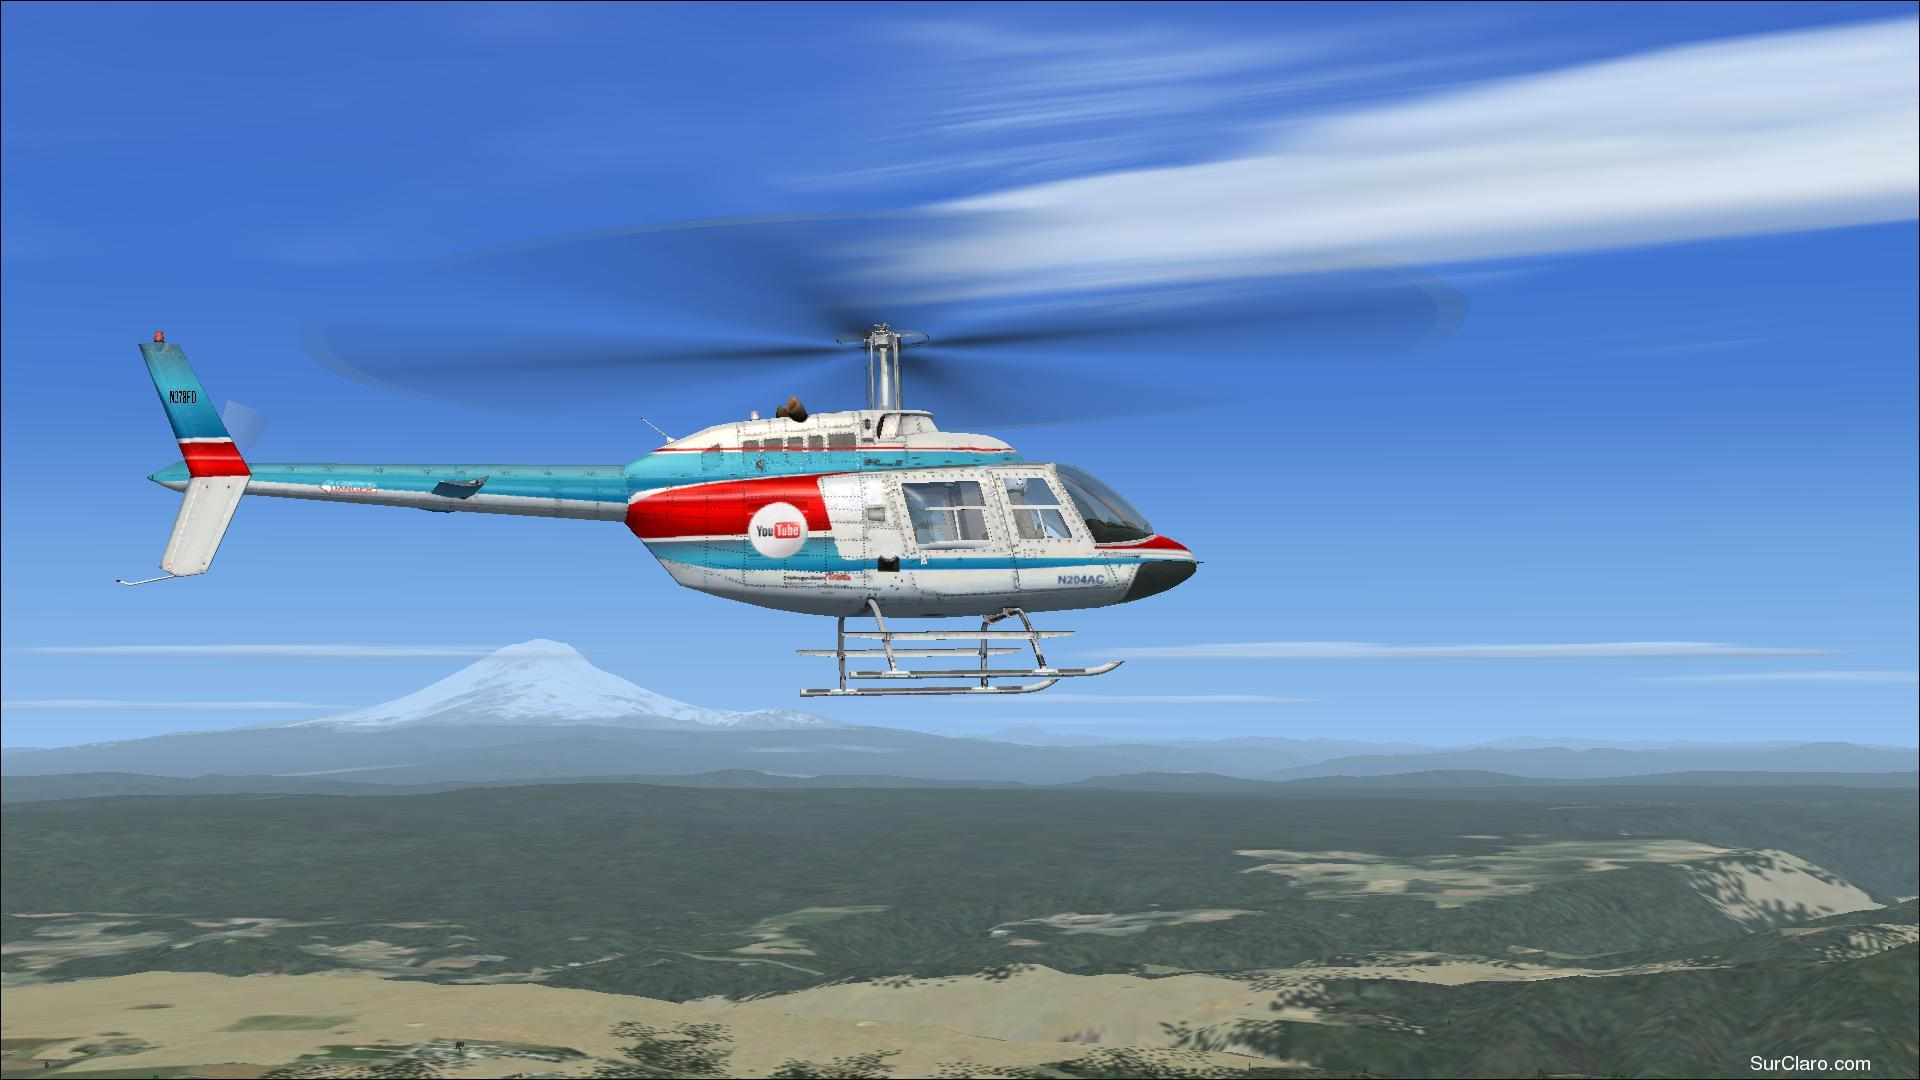 The 1st Official YOU TUBE Chopper (Bell206 B), You Tube on the prowl and making Video's in Flight Simulator FSX.  - Photo 18438